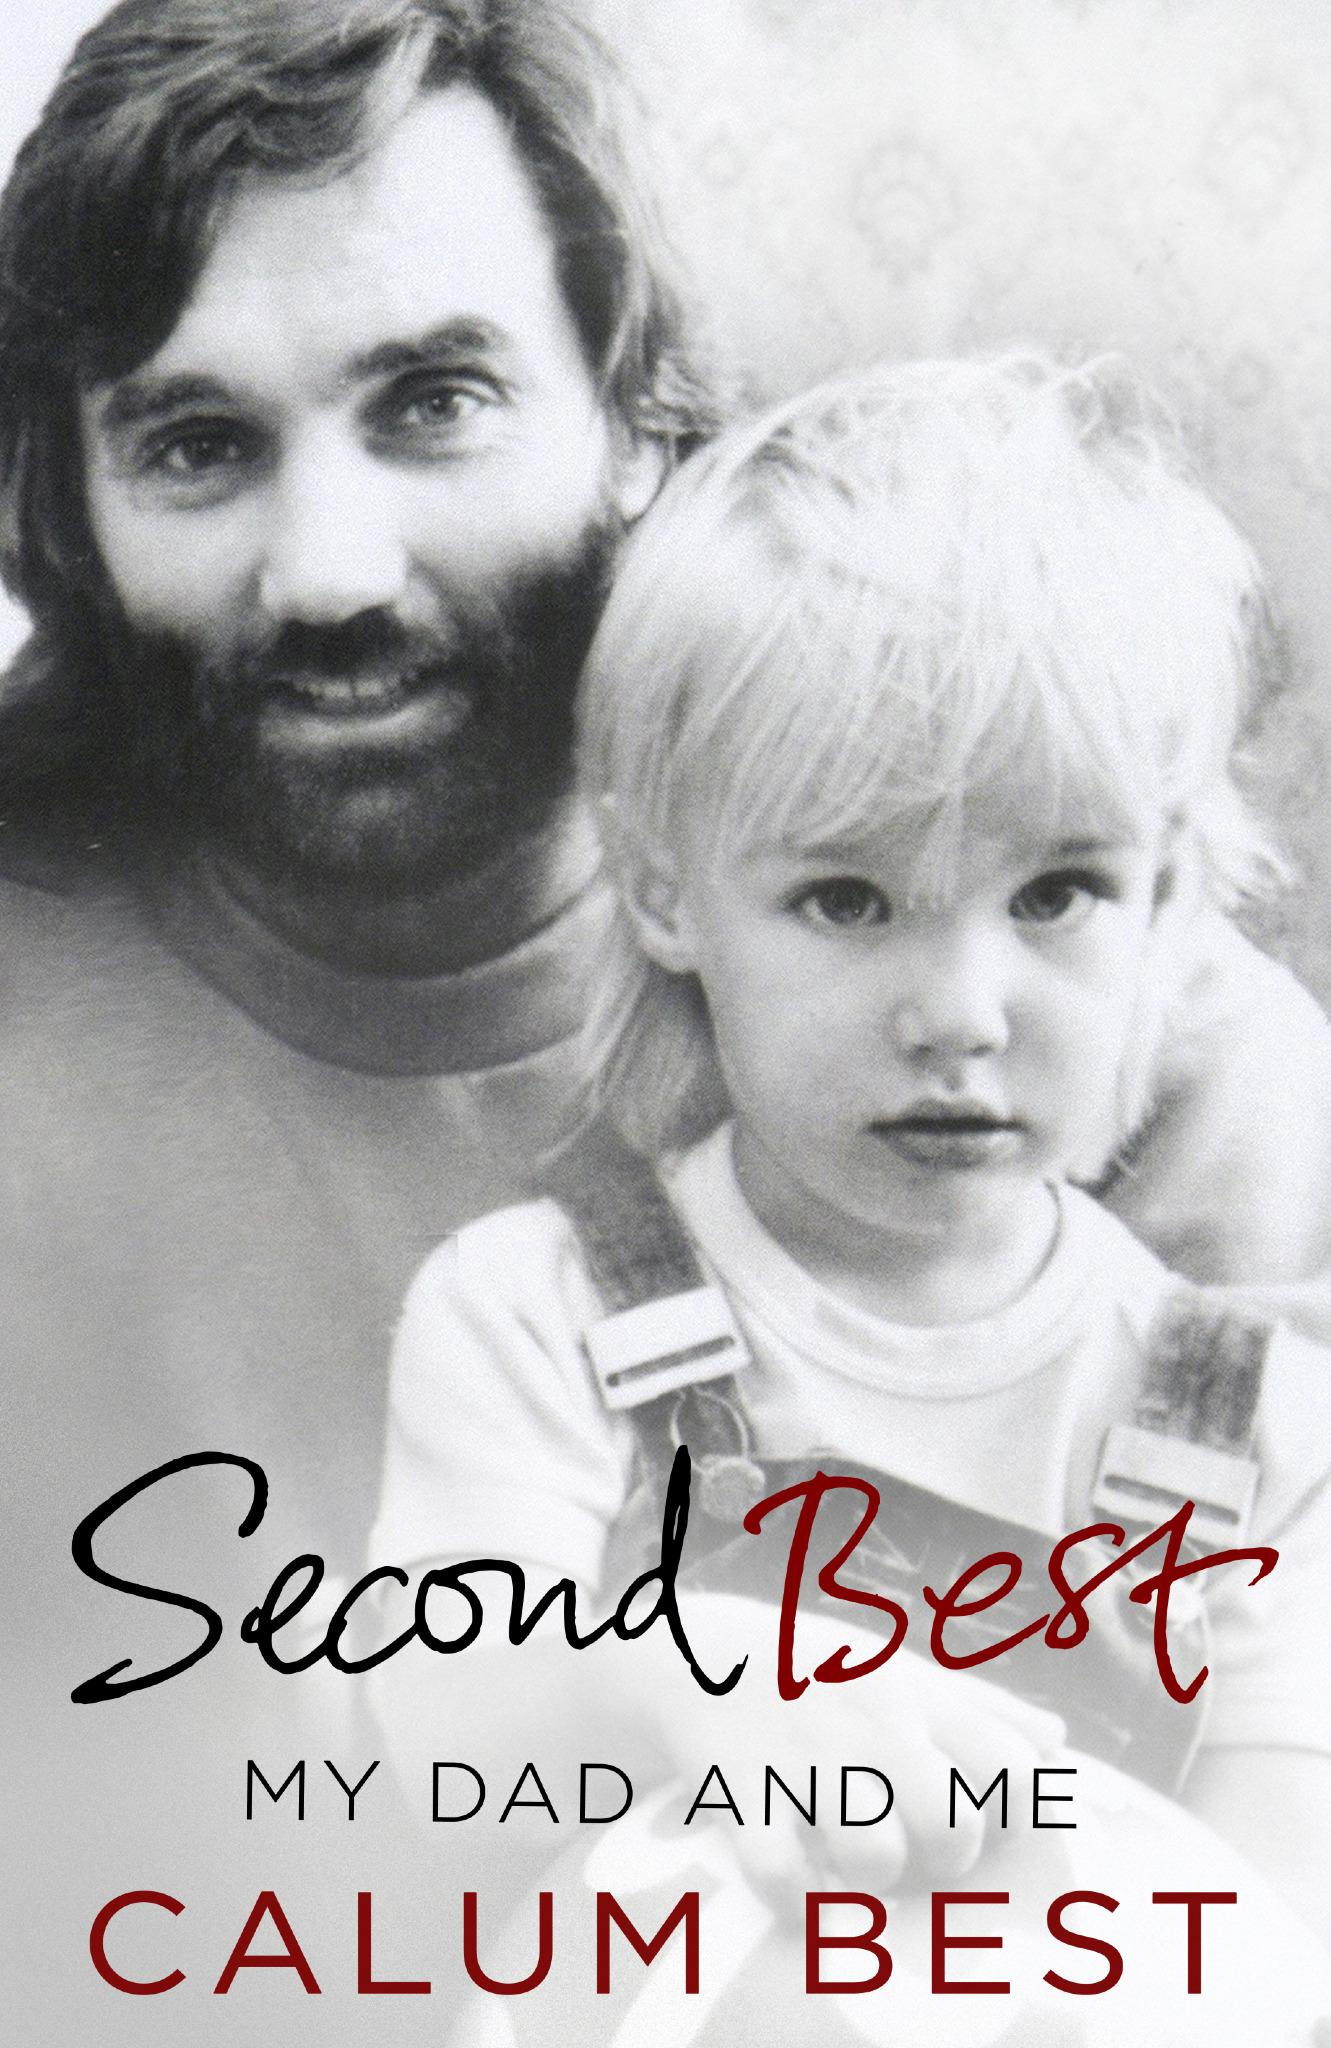 RT @TransworldBooks: #CBB fans, did you know @CalumBest's book, Second Best, is out March 26? It's heart-breaking & powerful. #CBBCalum htt…